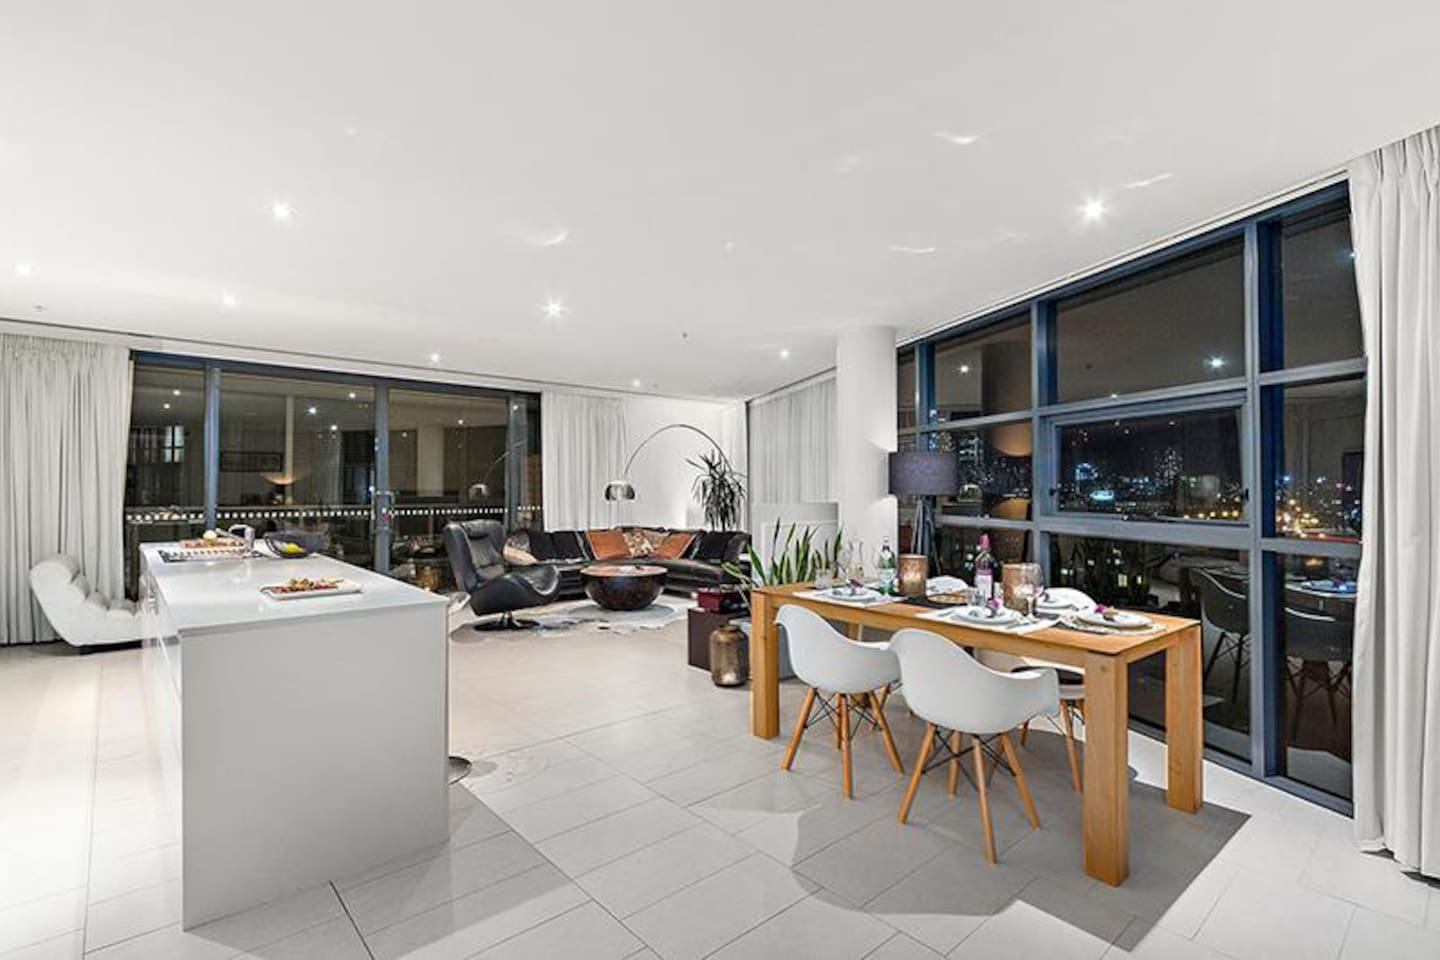 Living room, kitchen and dining area